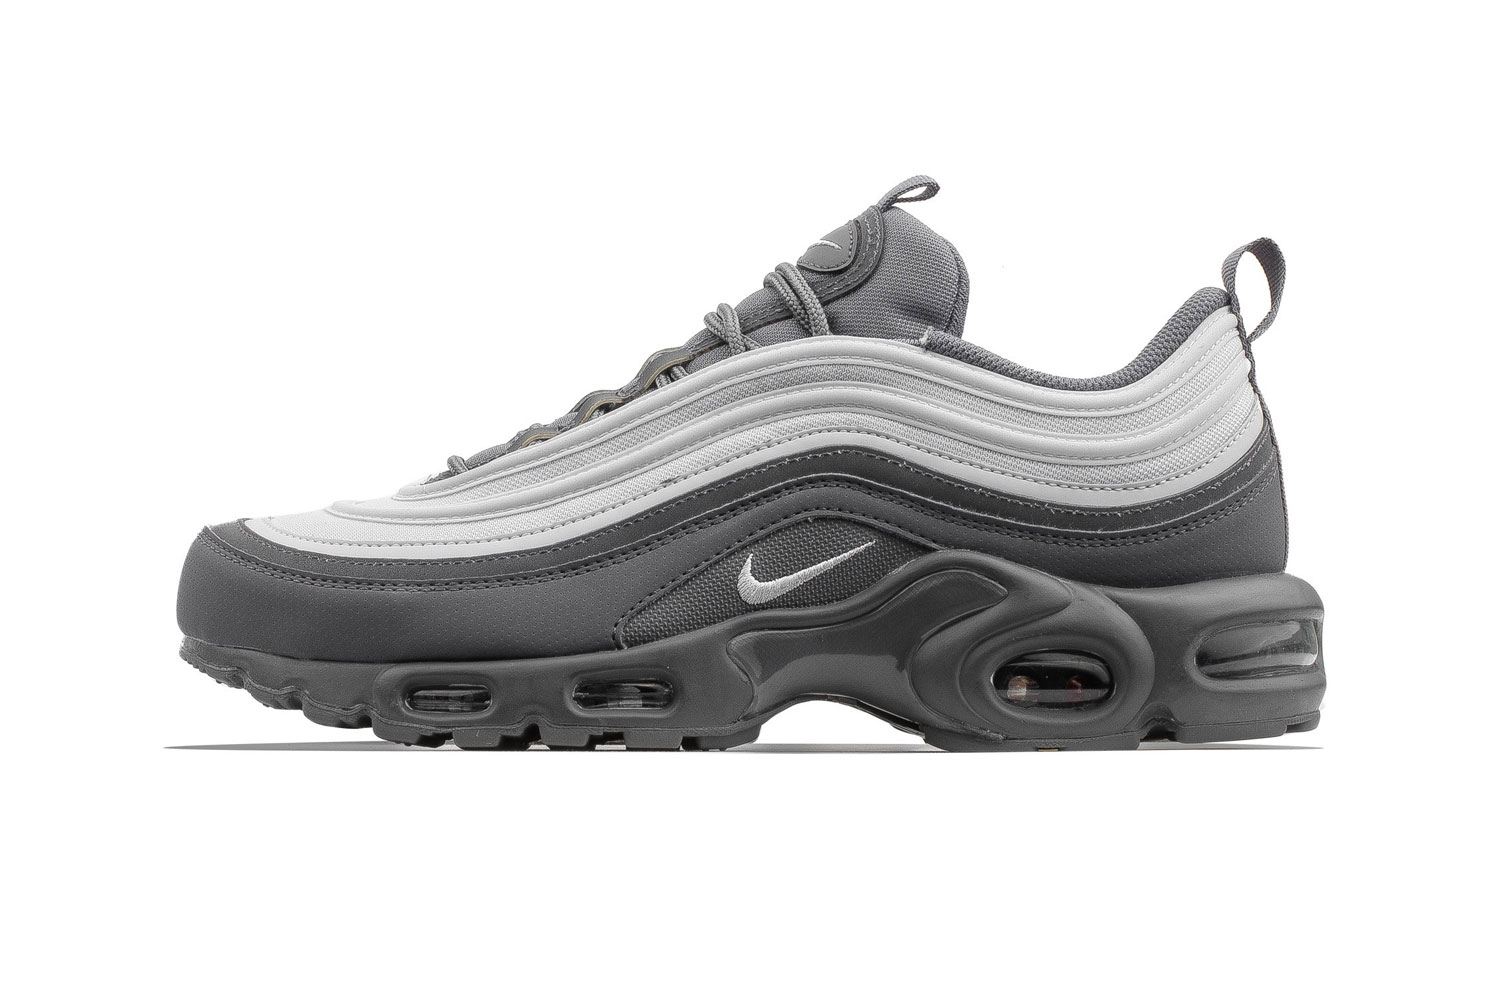 half price factory outlets offer discounts Nike Air Max Plus 97